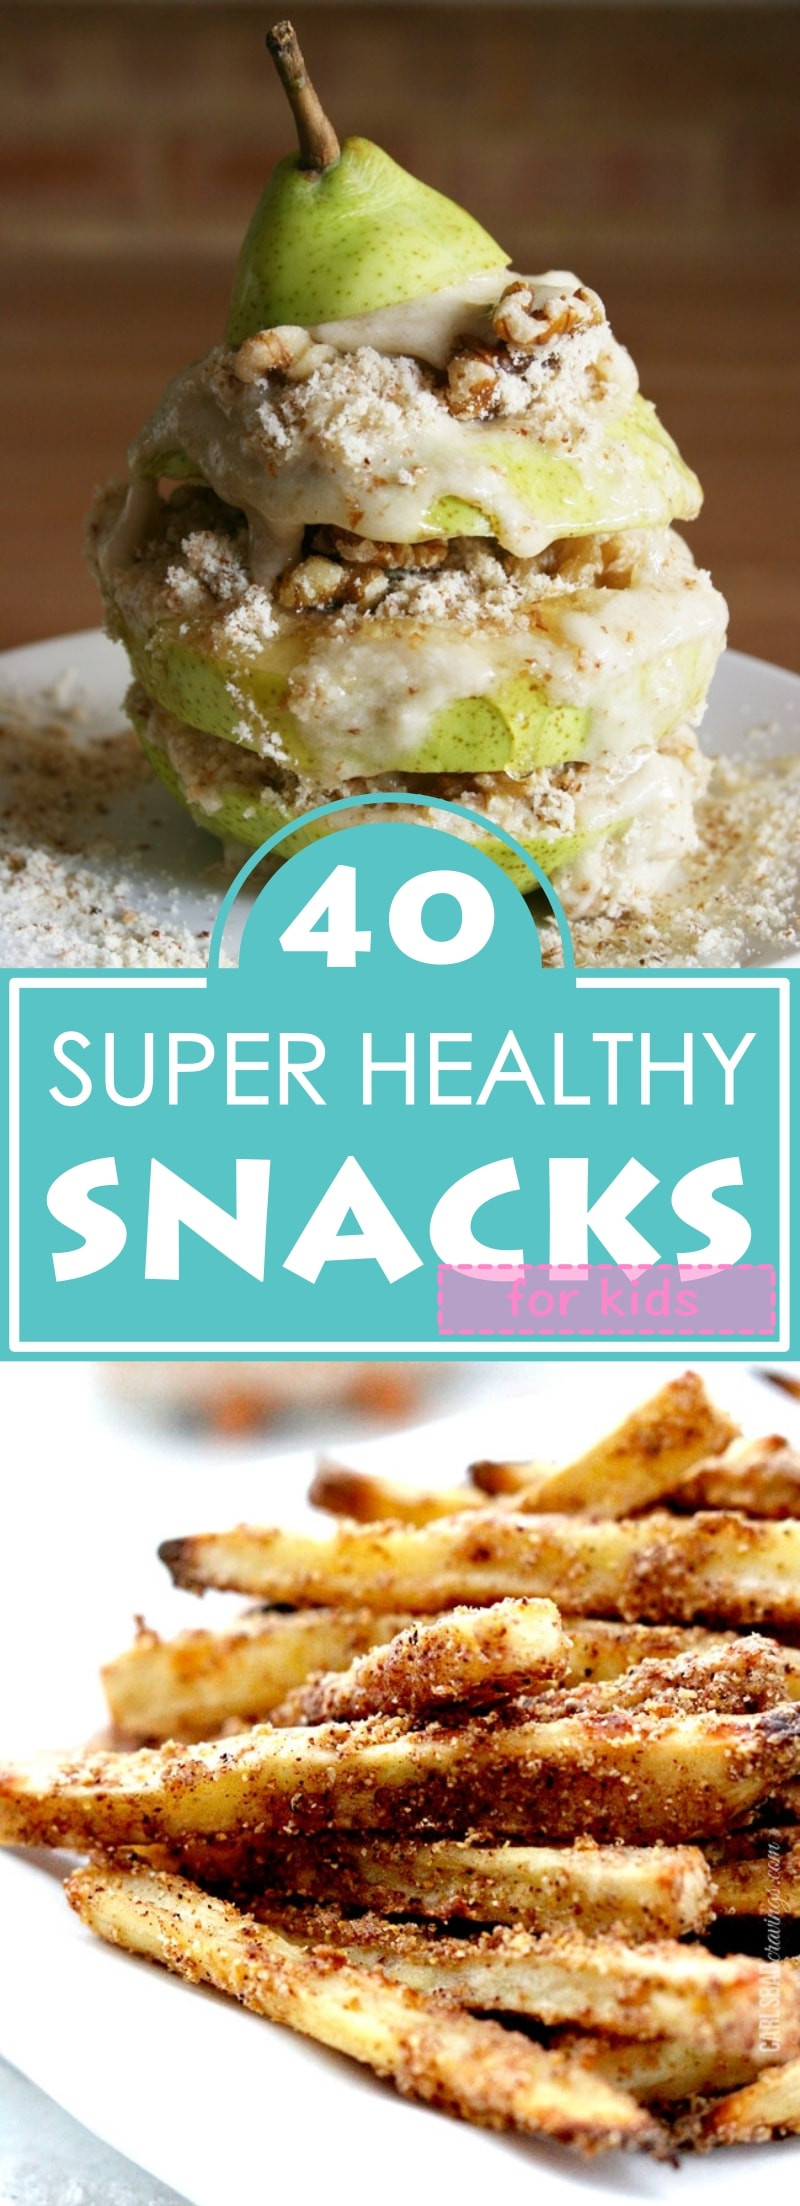 Healthy Snacks For Kids On The Go  40 Super Healthy Snacks For Kids Fitneass